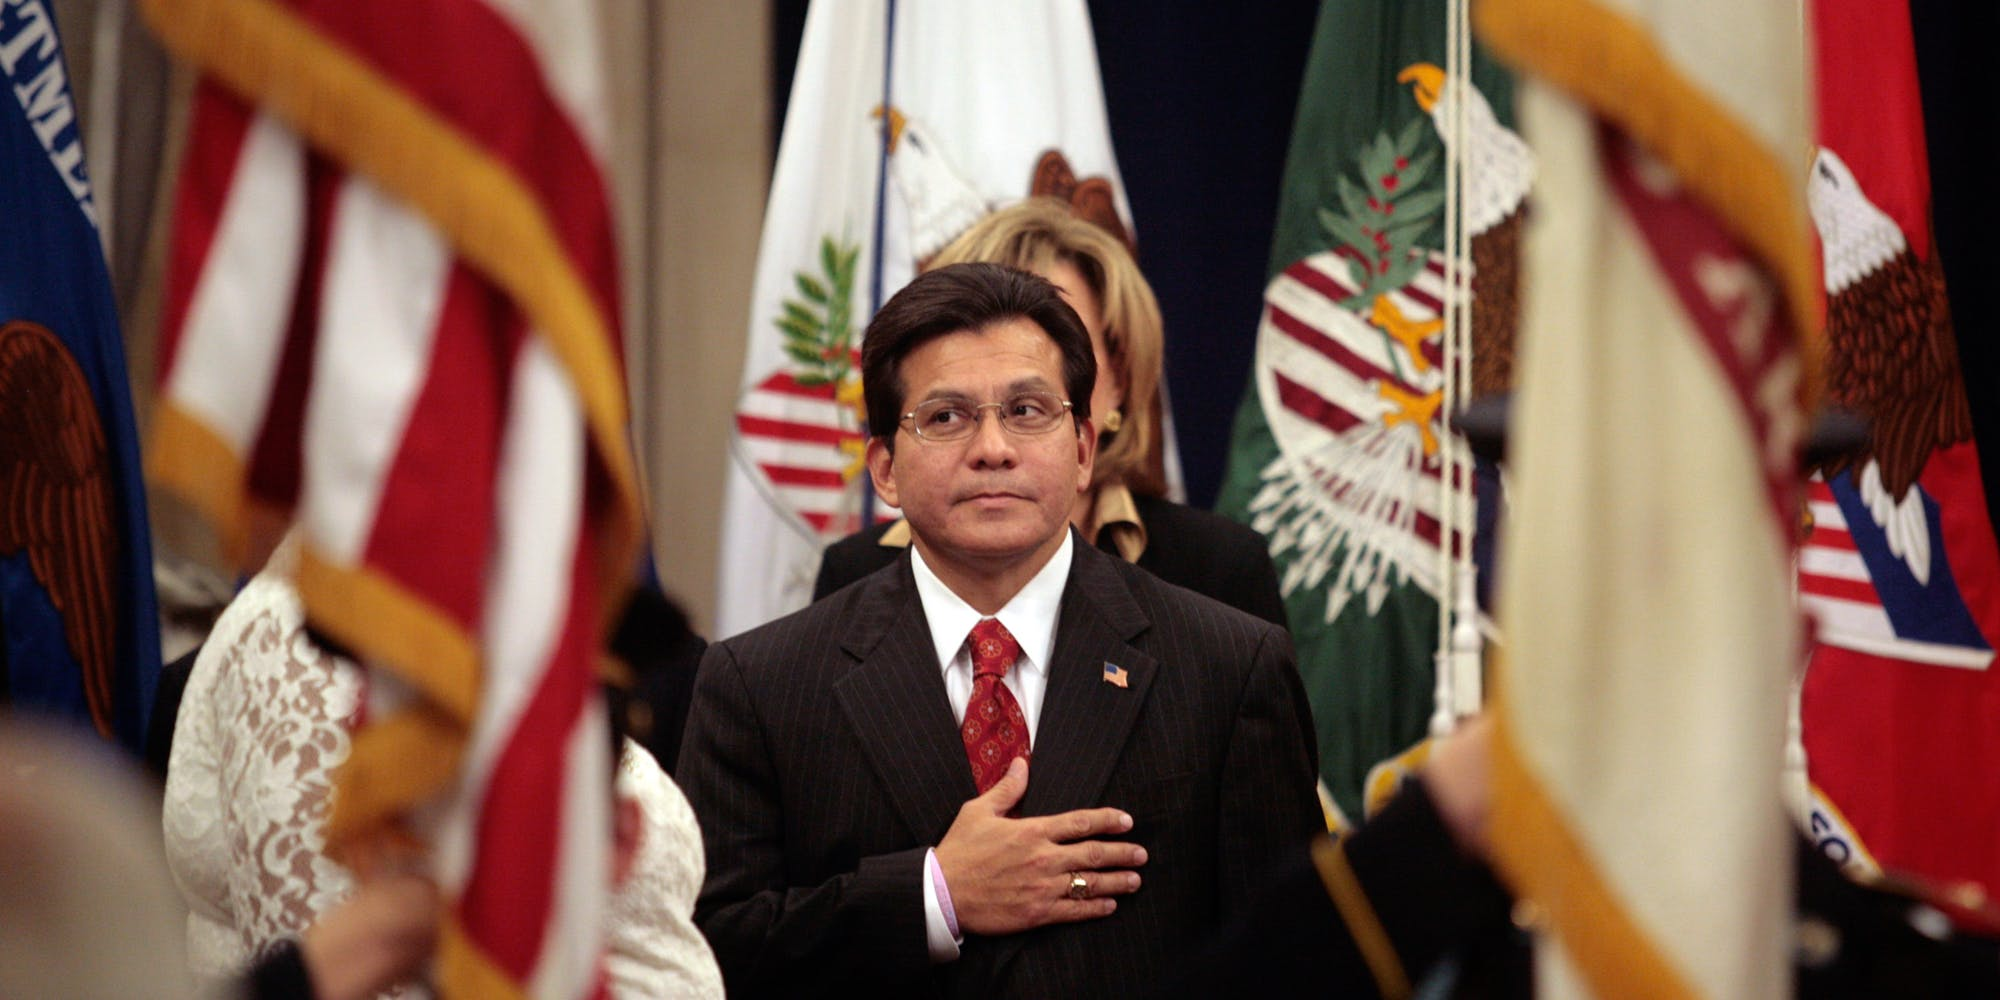 General Alberto Gonzales calls out jeff sessions for marijuana stance